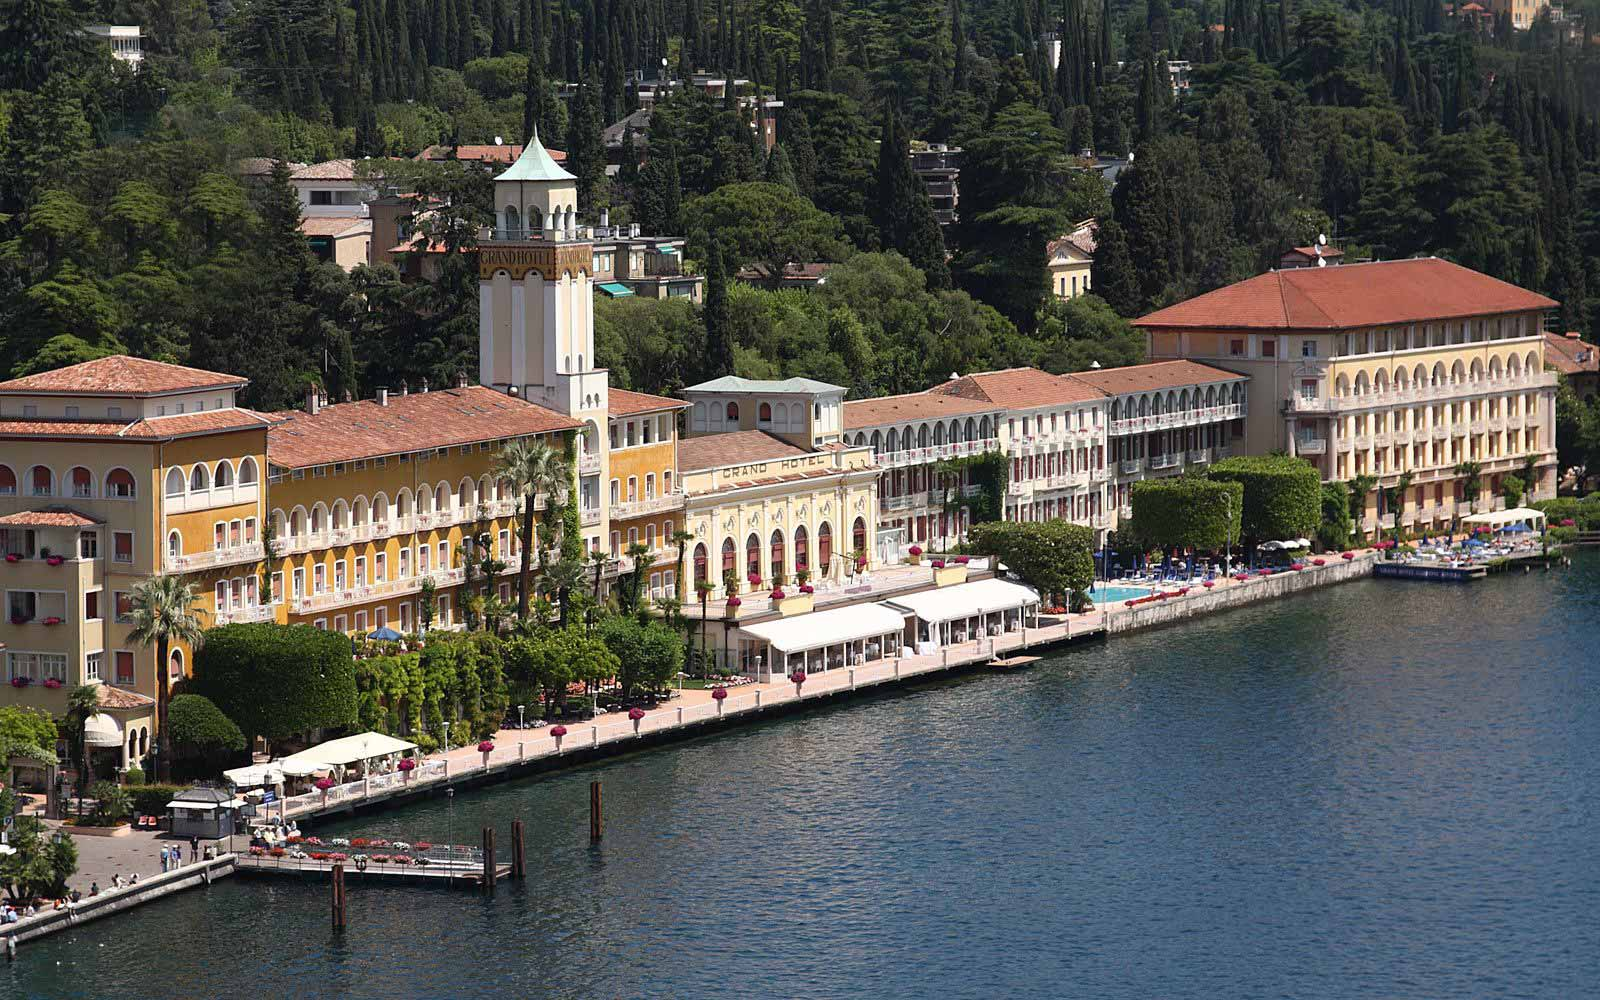 Panoramic view of Grand Hotel Gardone